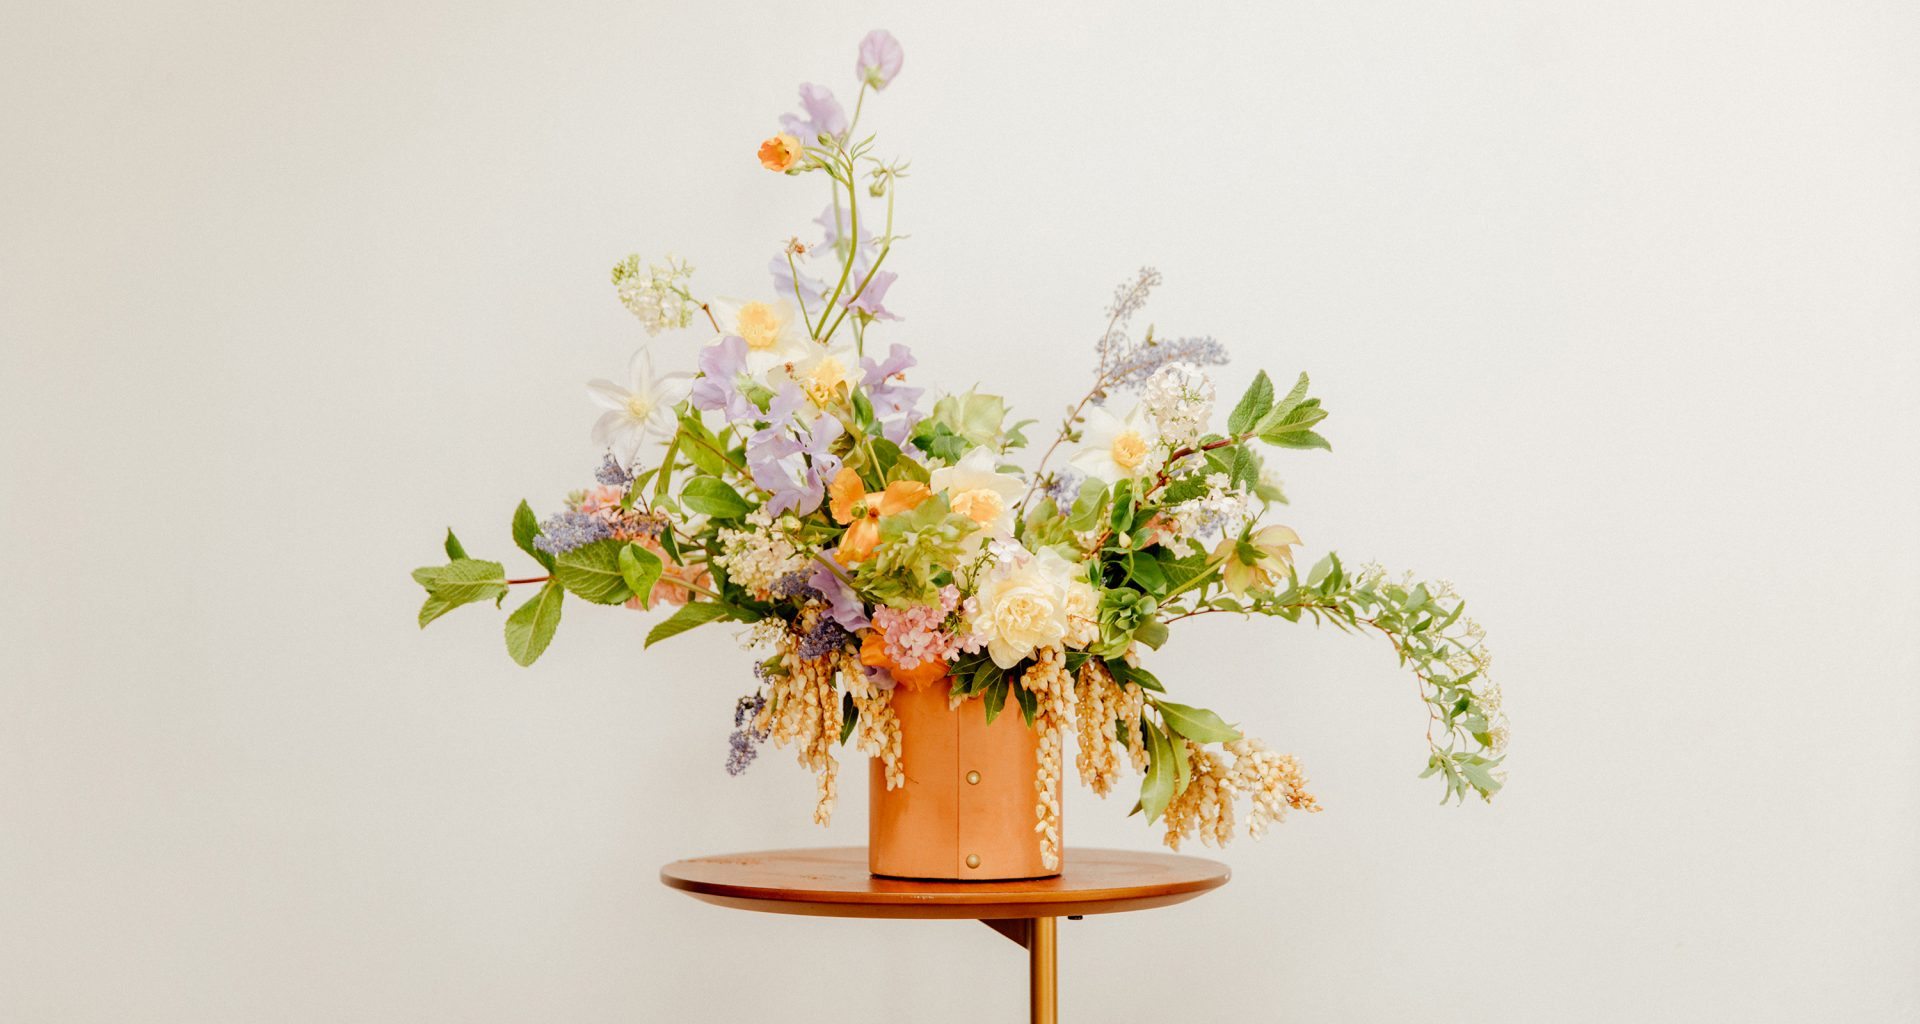 How to Create a Standout Spring Floral Arrangement at Home